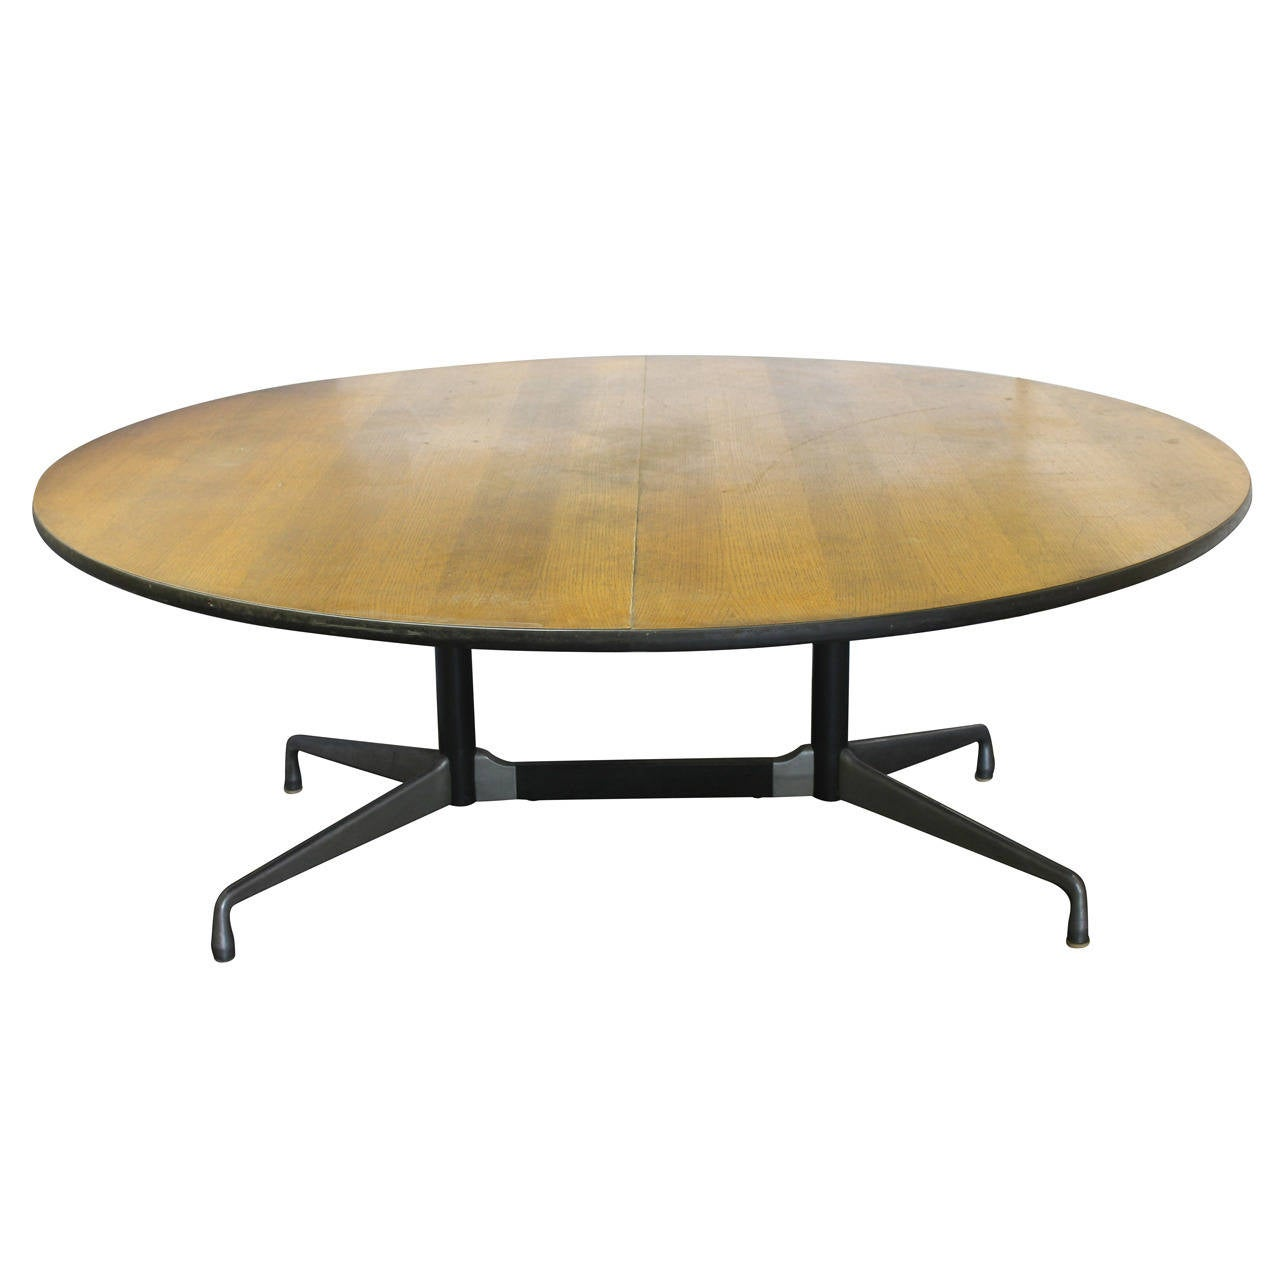 Six foot dining round table by charles and ray eames for for 6 foot round dining table